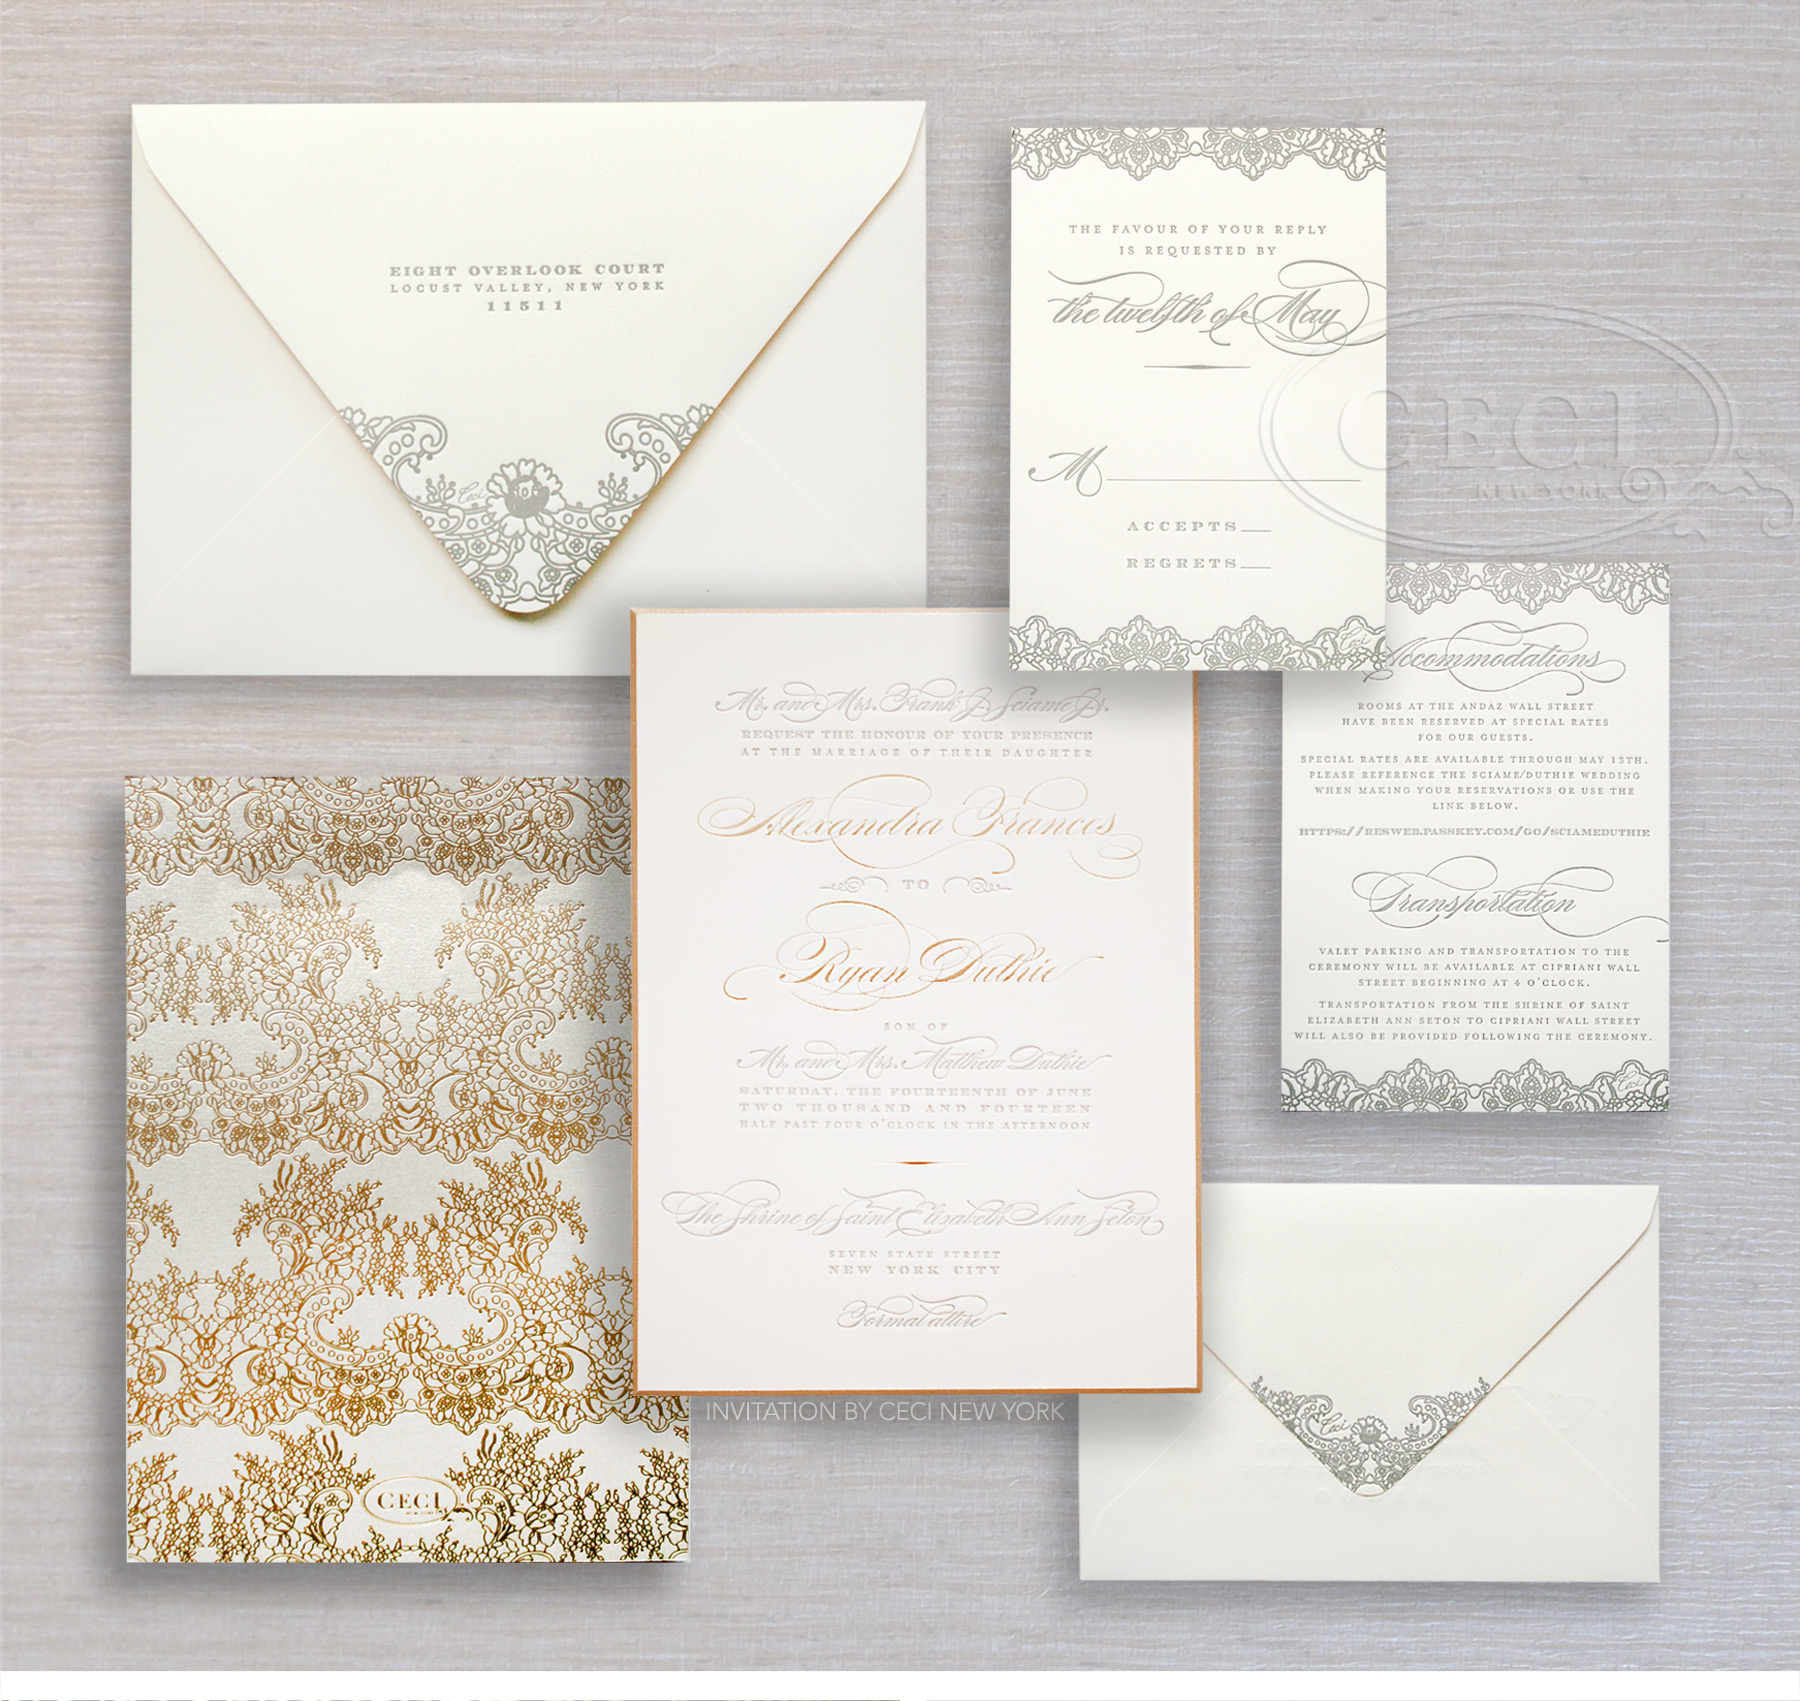 Luxury Wedding Invitations by Ceci New York - Our Muse - Urban Elegance - Be inspired by Alexandra and Ryan's elegant wedding in Wall Street, New York. - custom wedding invitations, luxury wedding invitations, couture, ceci new york, wall street, new york city